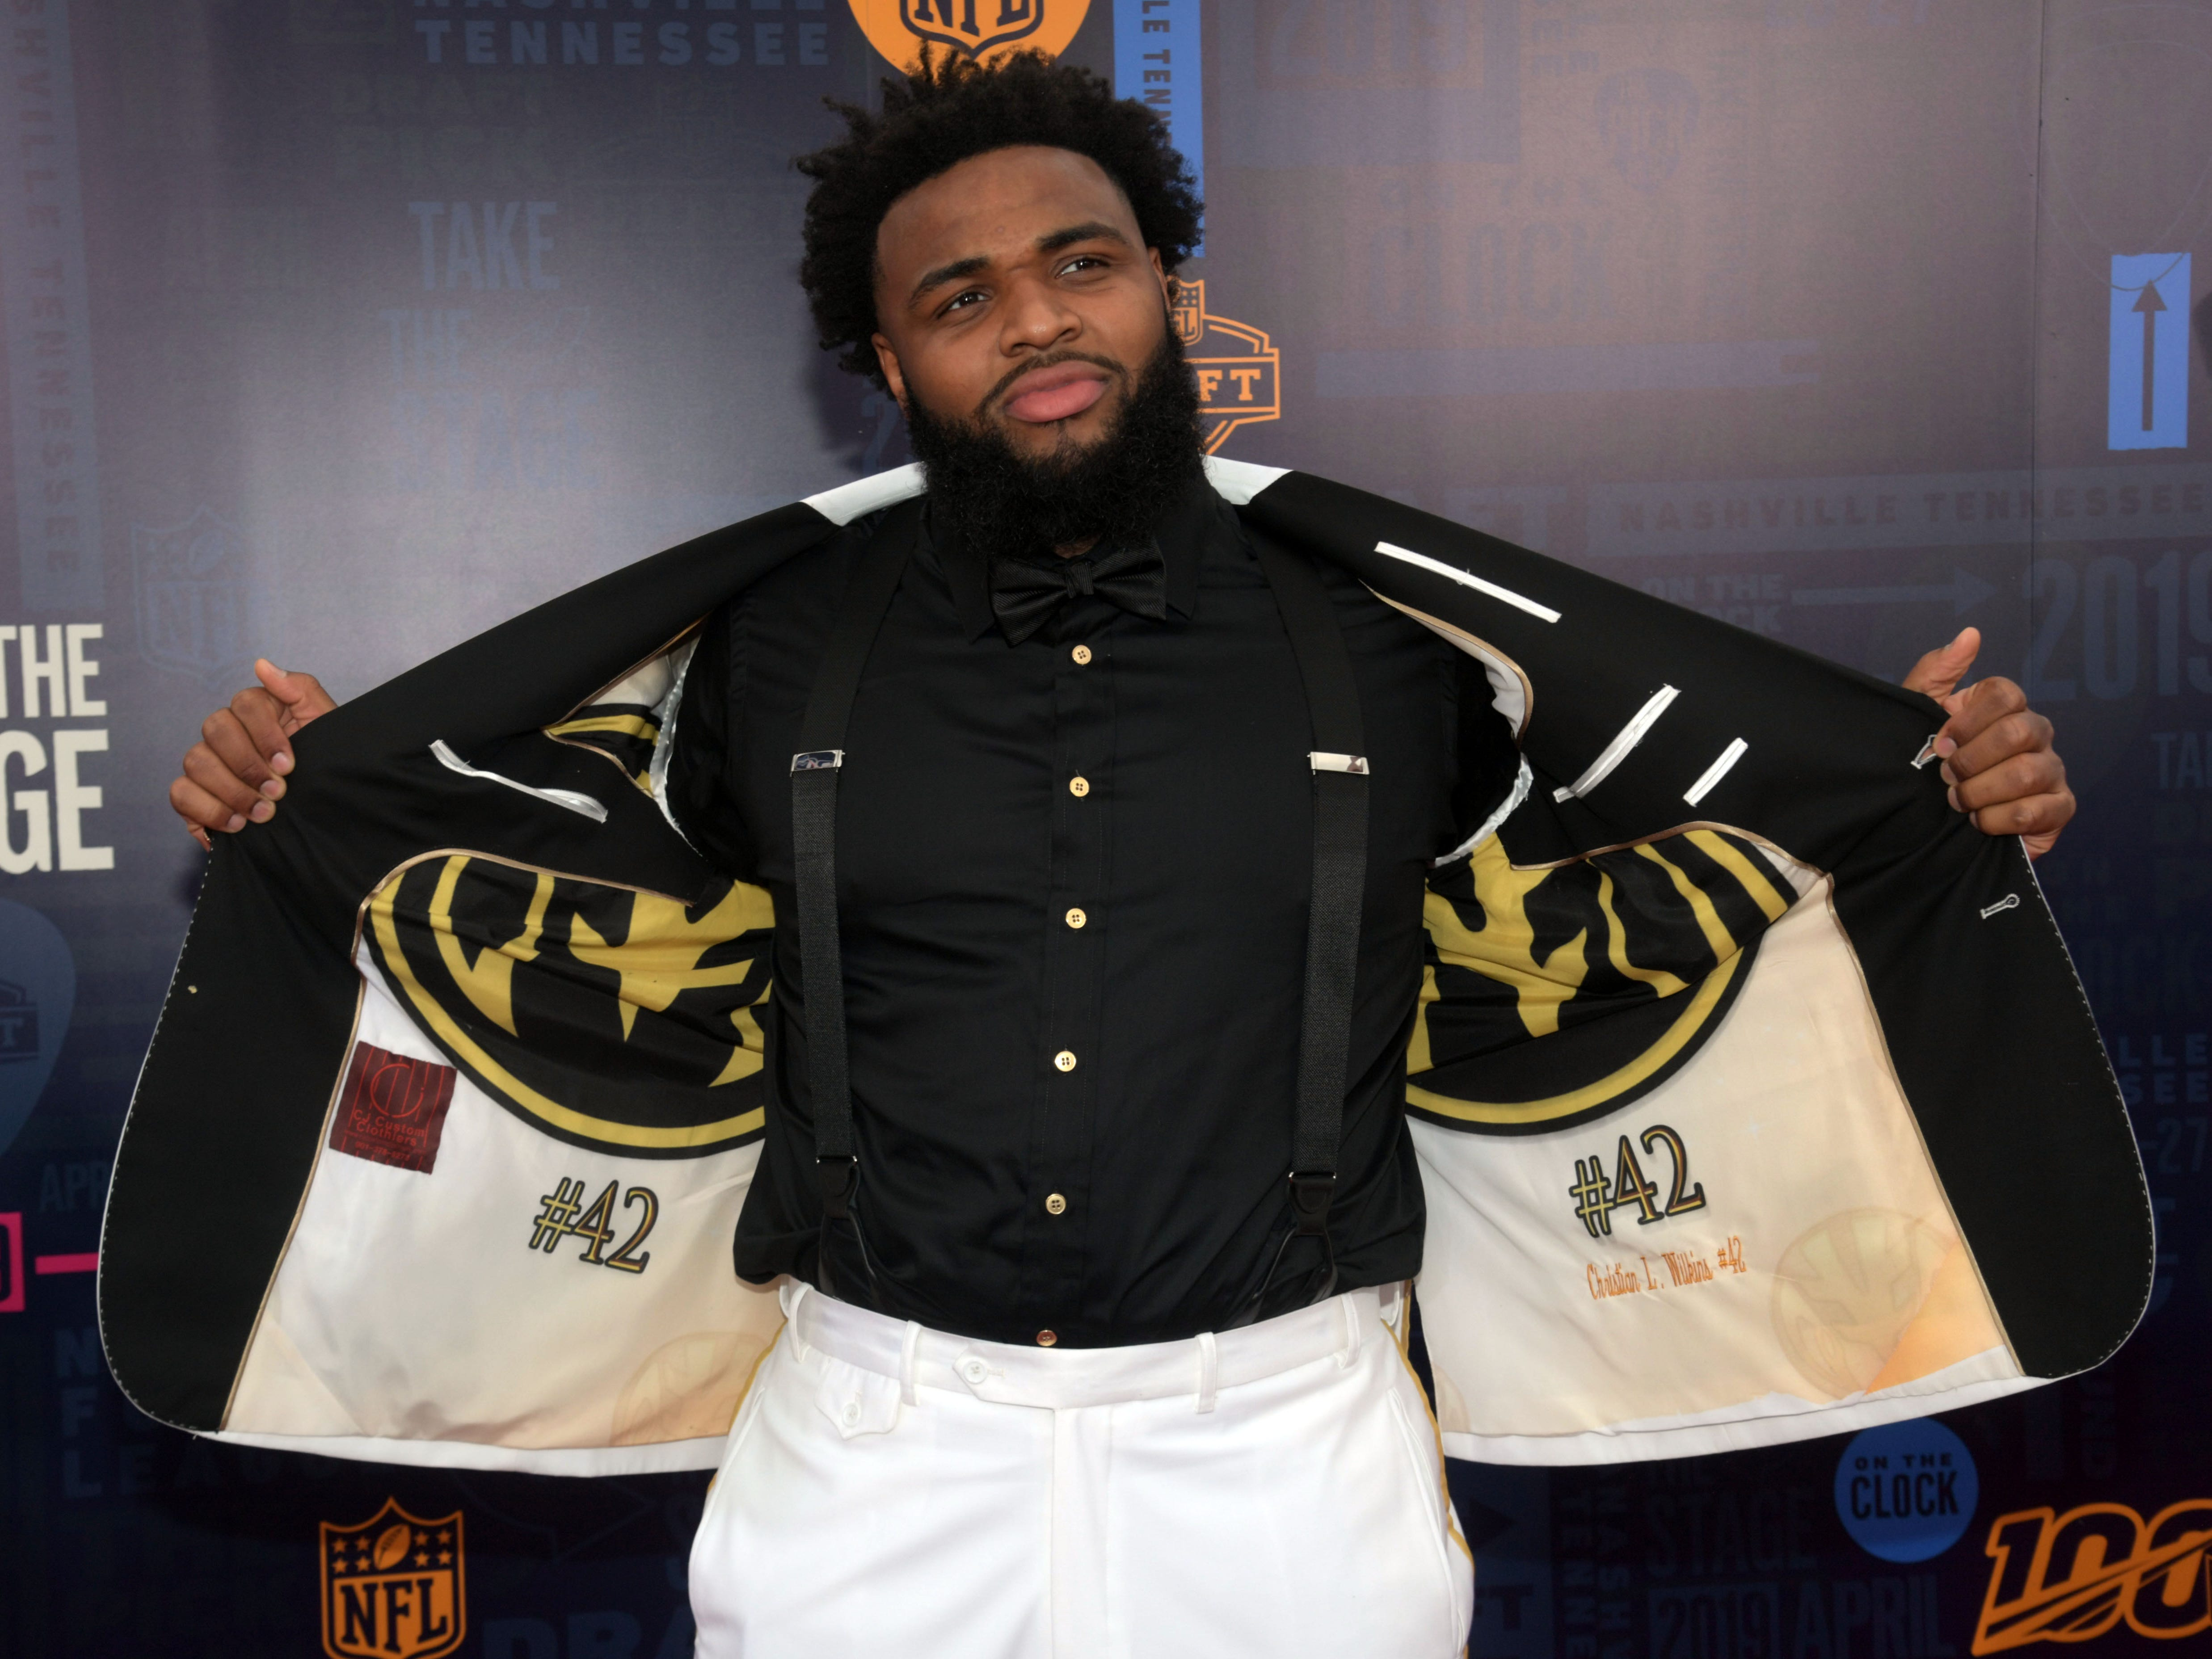 Christian Wilkins (of Clemson) on the red carpet prior to the first round of the 2019 NFL draft.